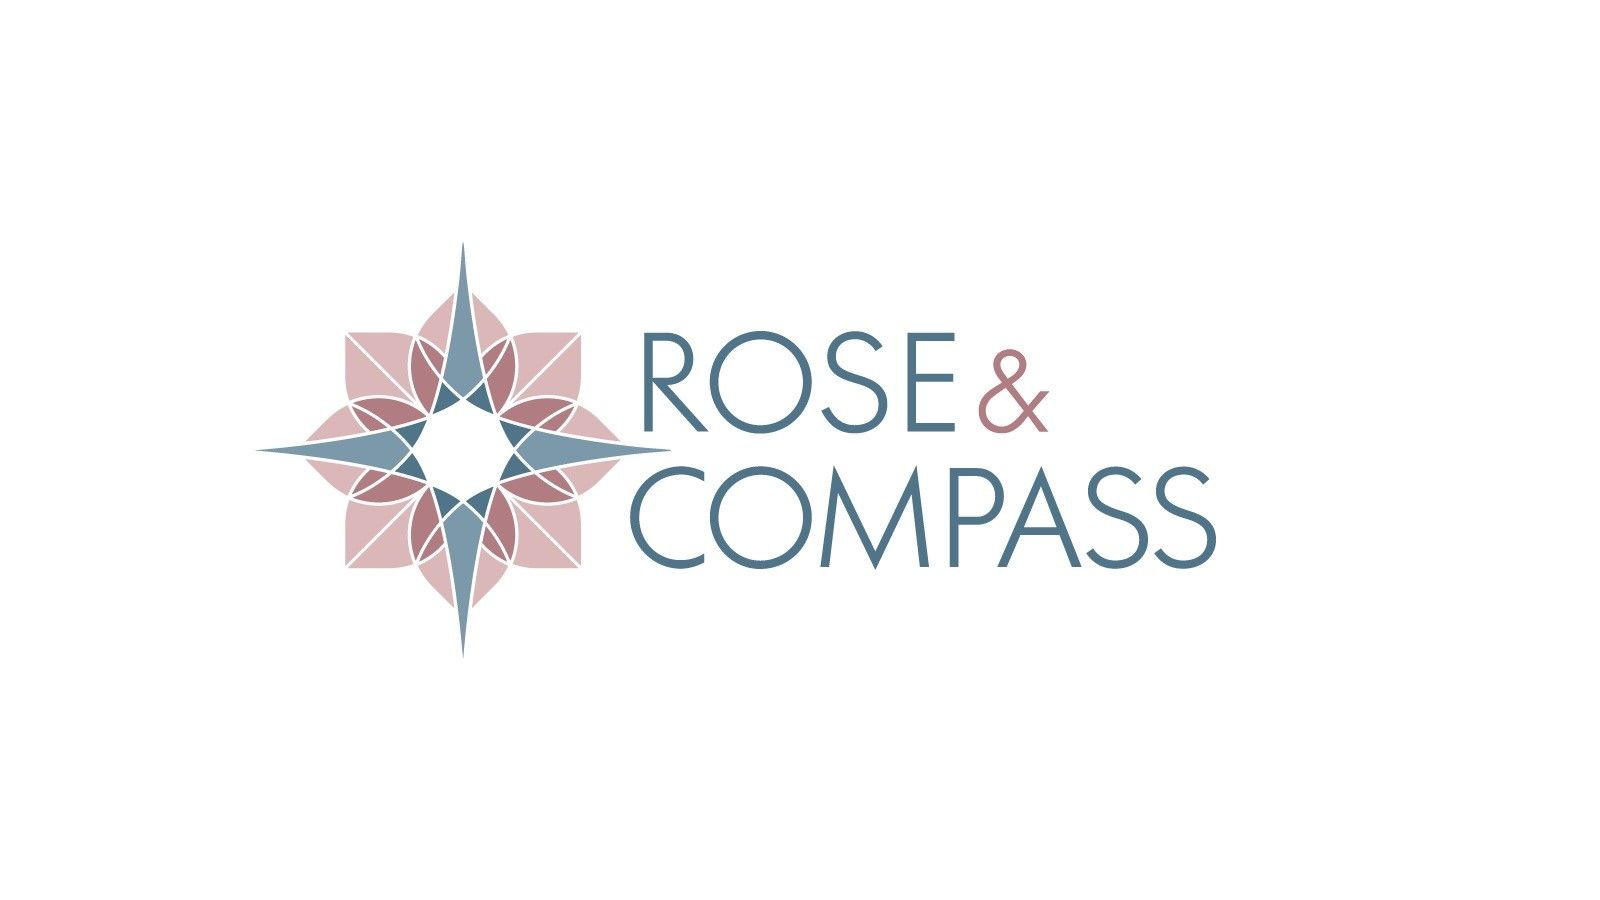 Sheraton Portland Airport Hotel - Rose & Compass